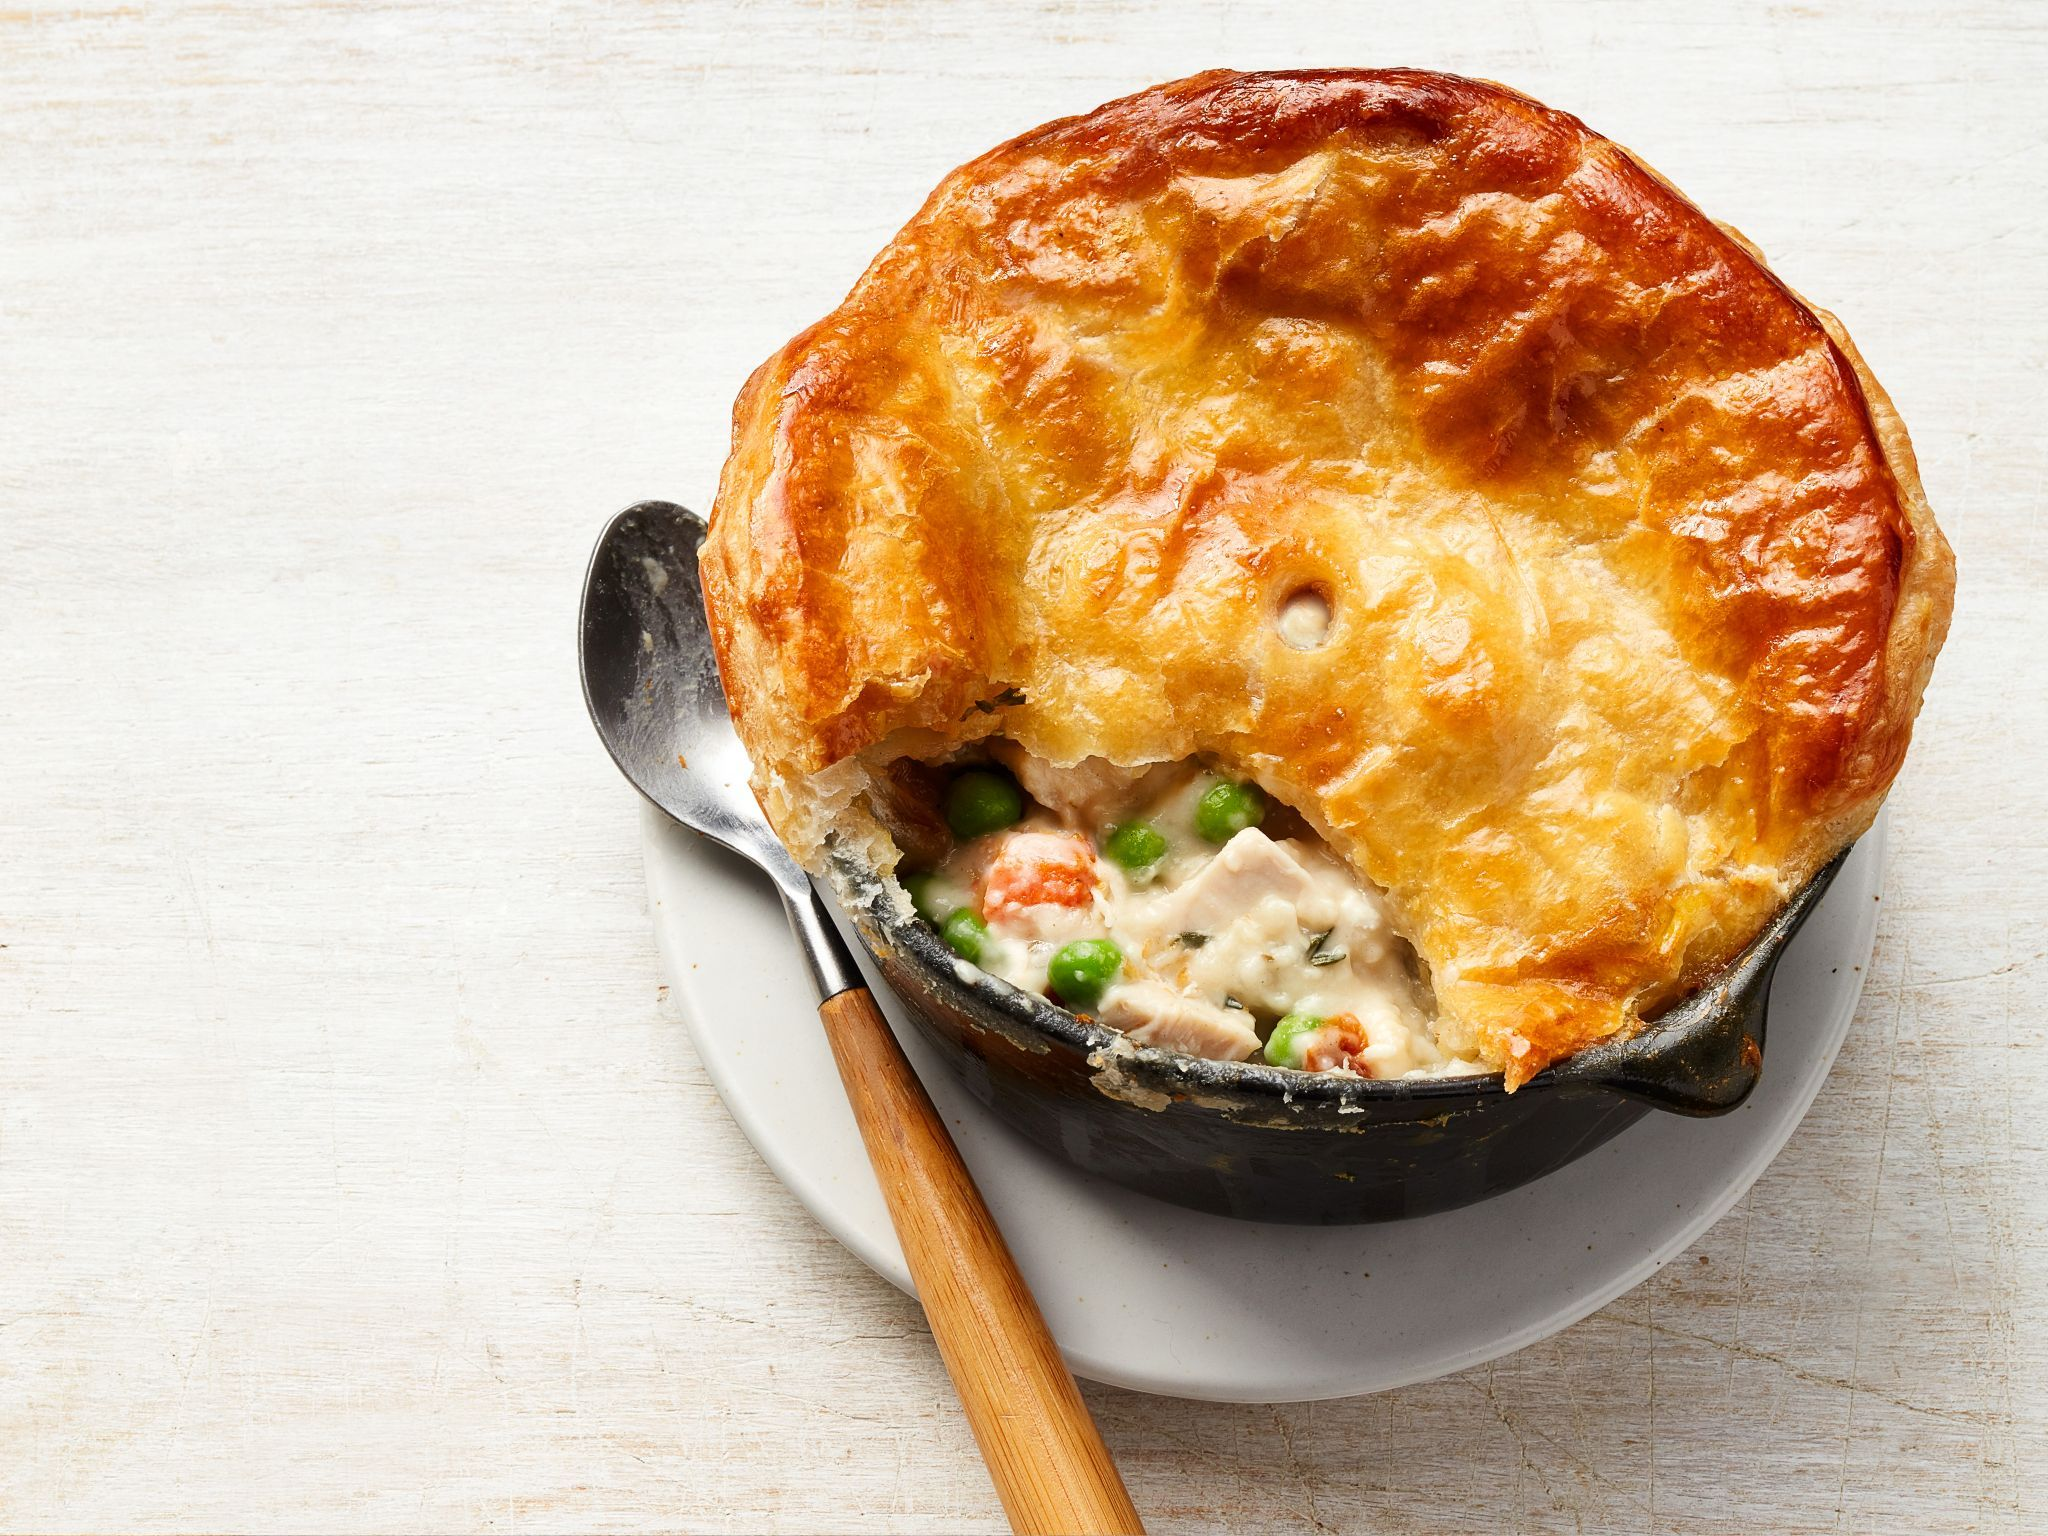 Chicken pot pie recipe katie lee pot pies and pie recipes chicken pot pie forumfinder Image collections